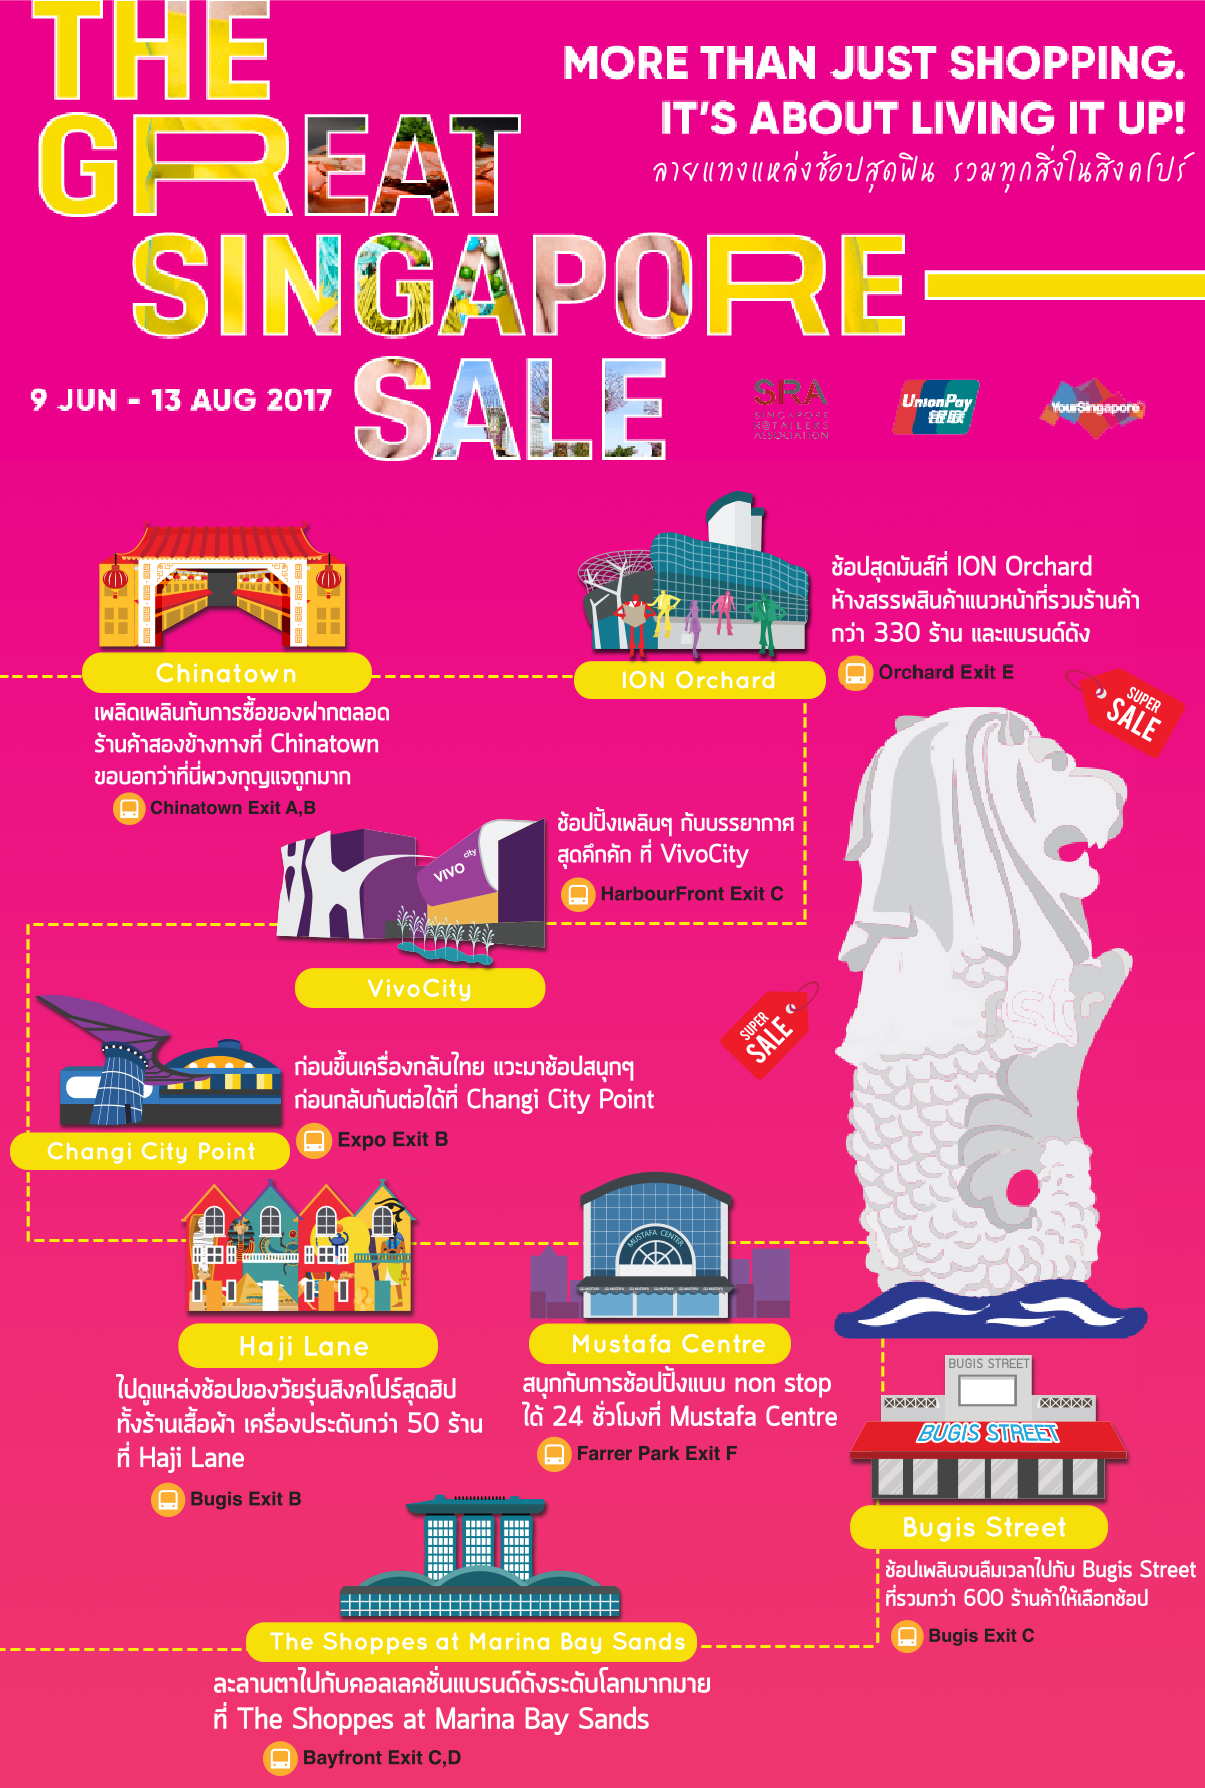 Merlion GSS_Infographic